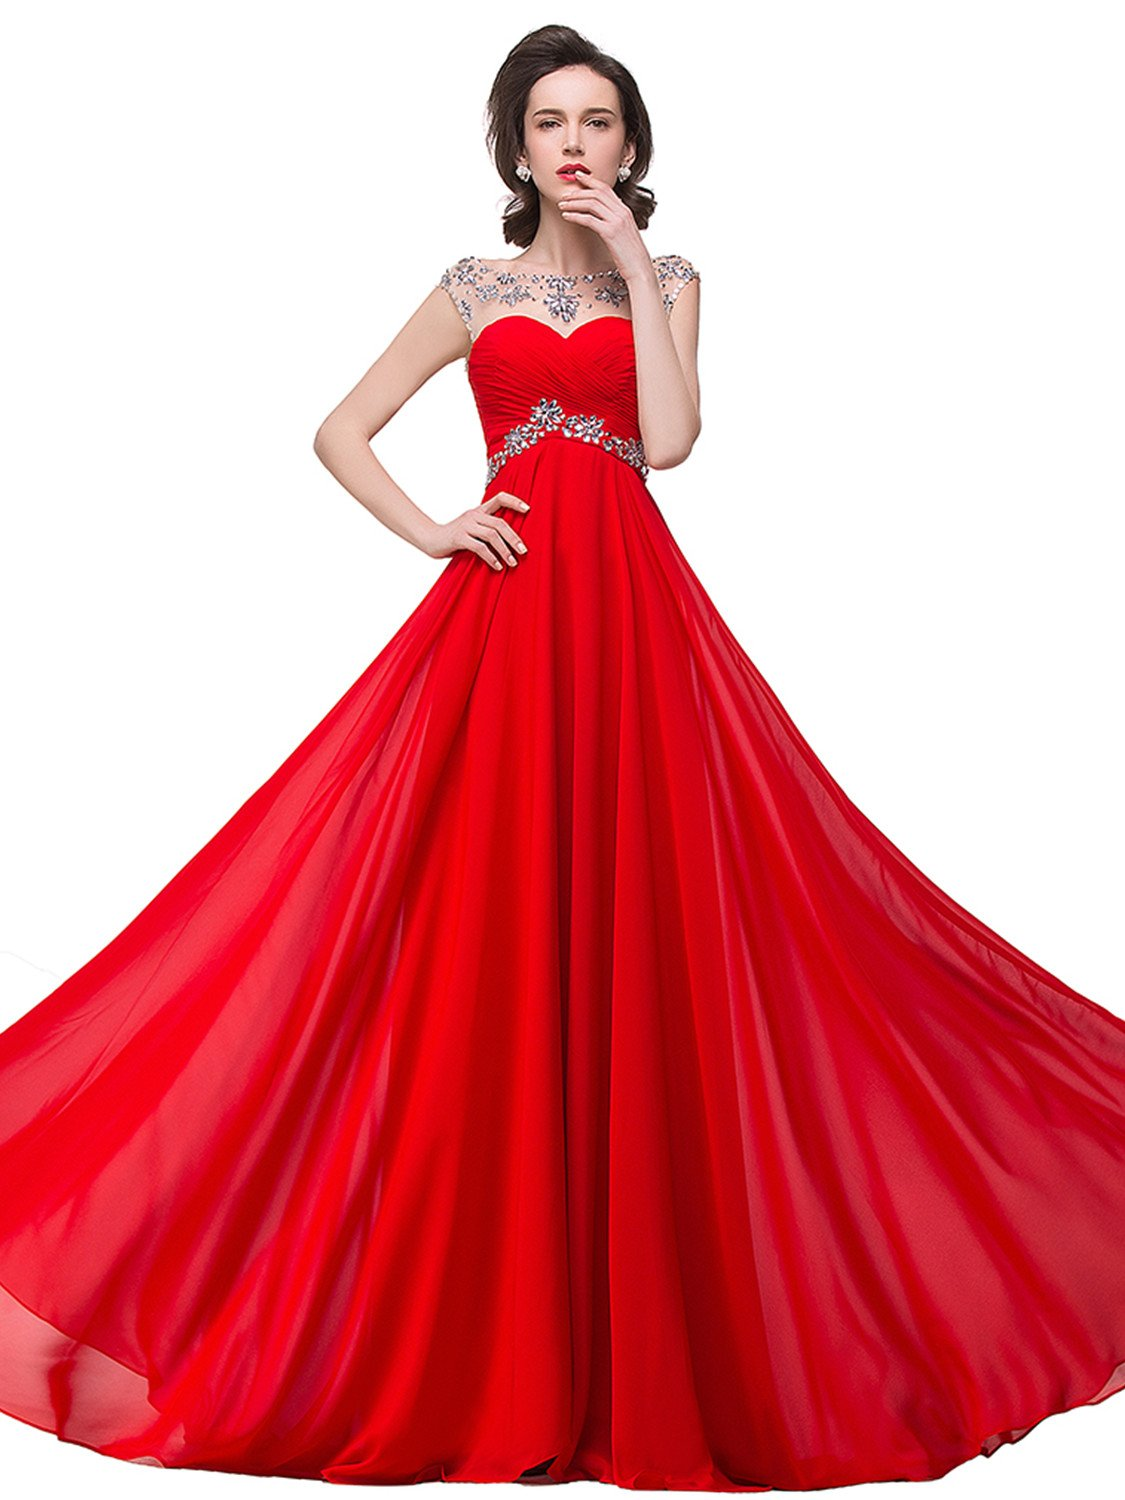 plus size prom dresses for Women Chiffon Bridesmaid Gown,  red, 16